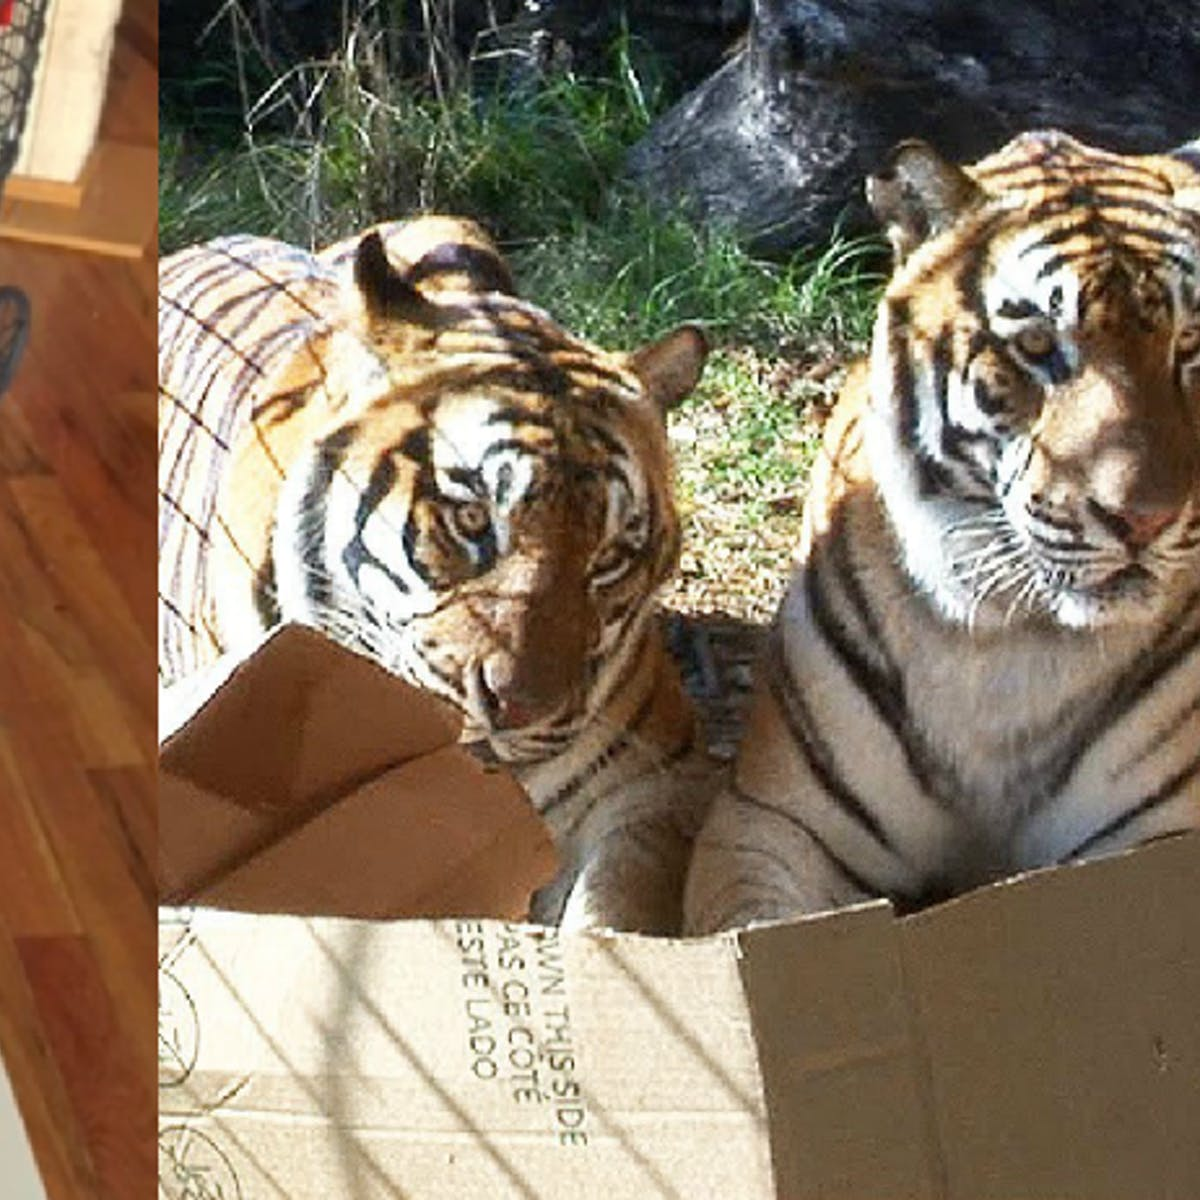 Why Cats Love Boxes, According to Science